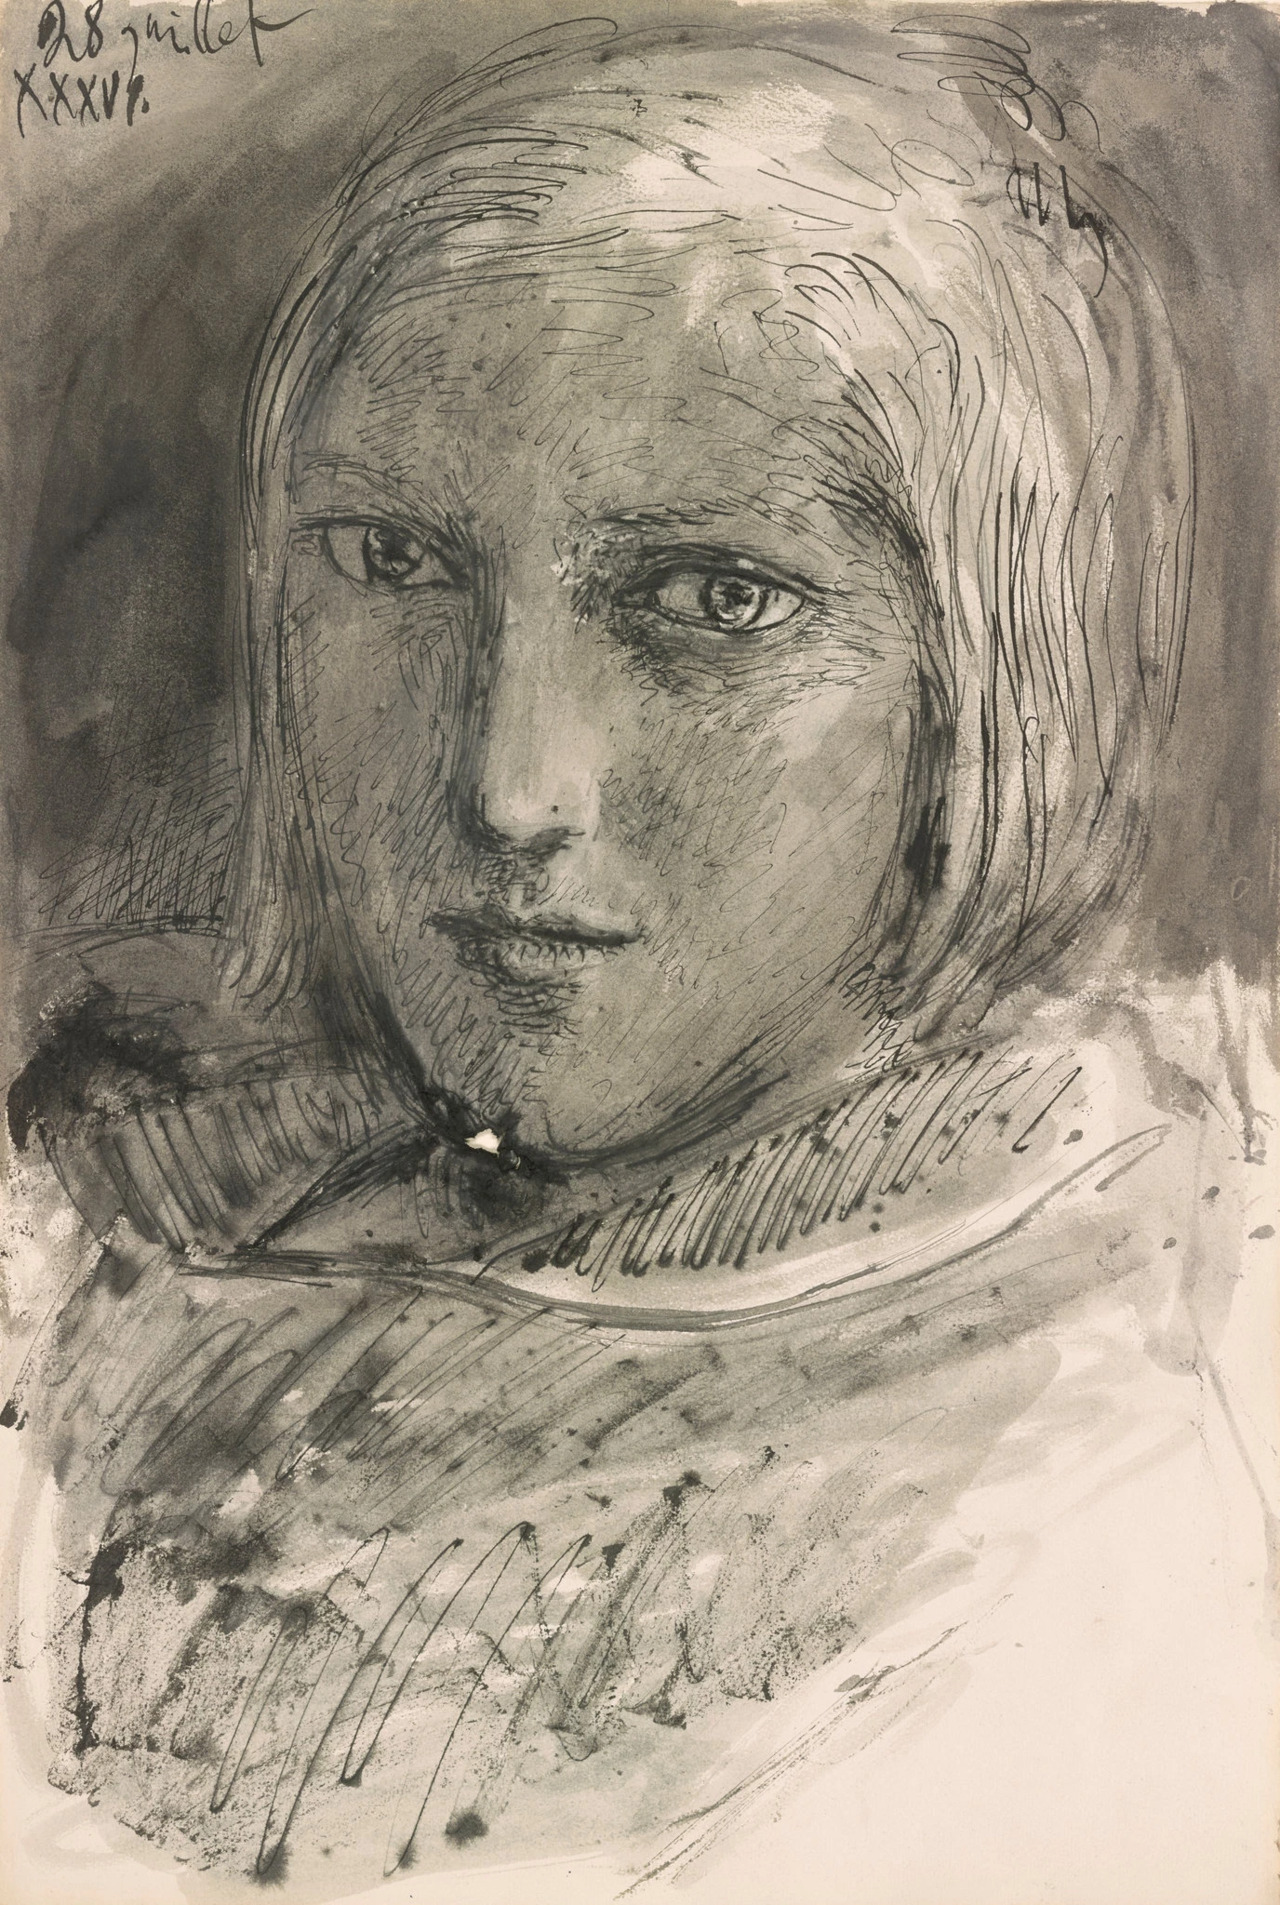 Pablo Picasso, Portrait of Marie-Thérèse Walter, 1936, Pen and black ink and wash